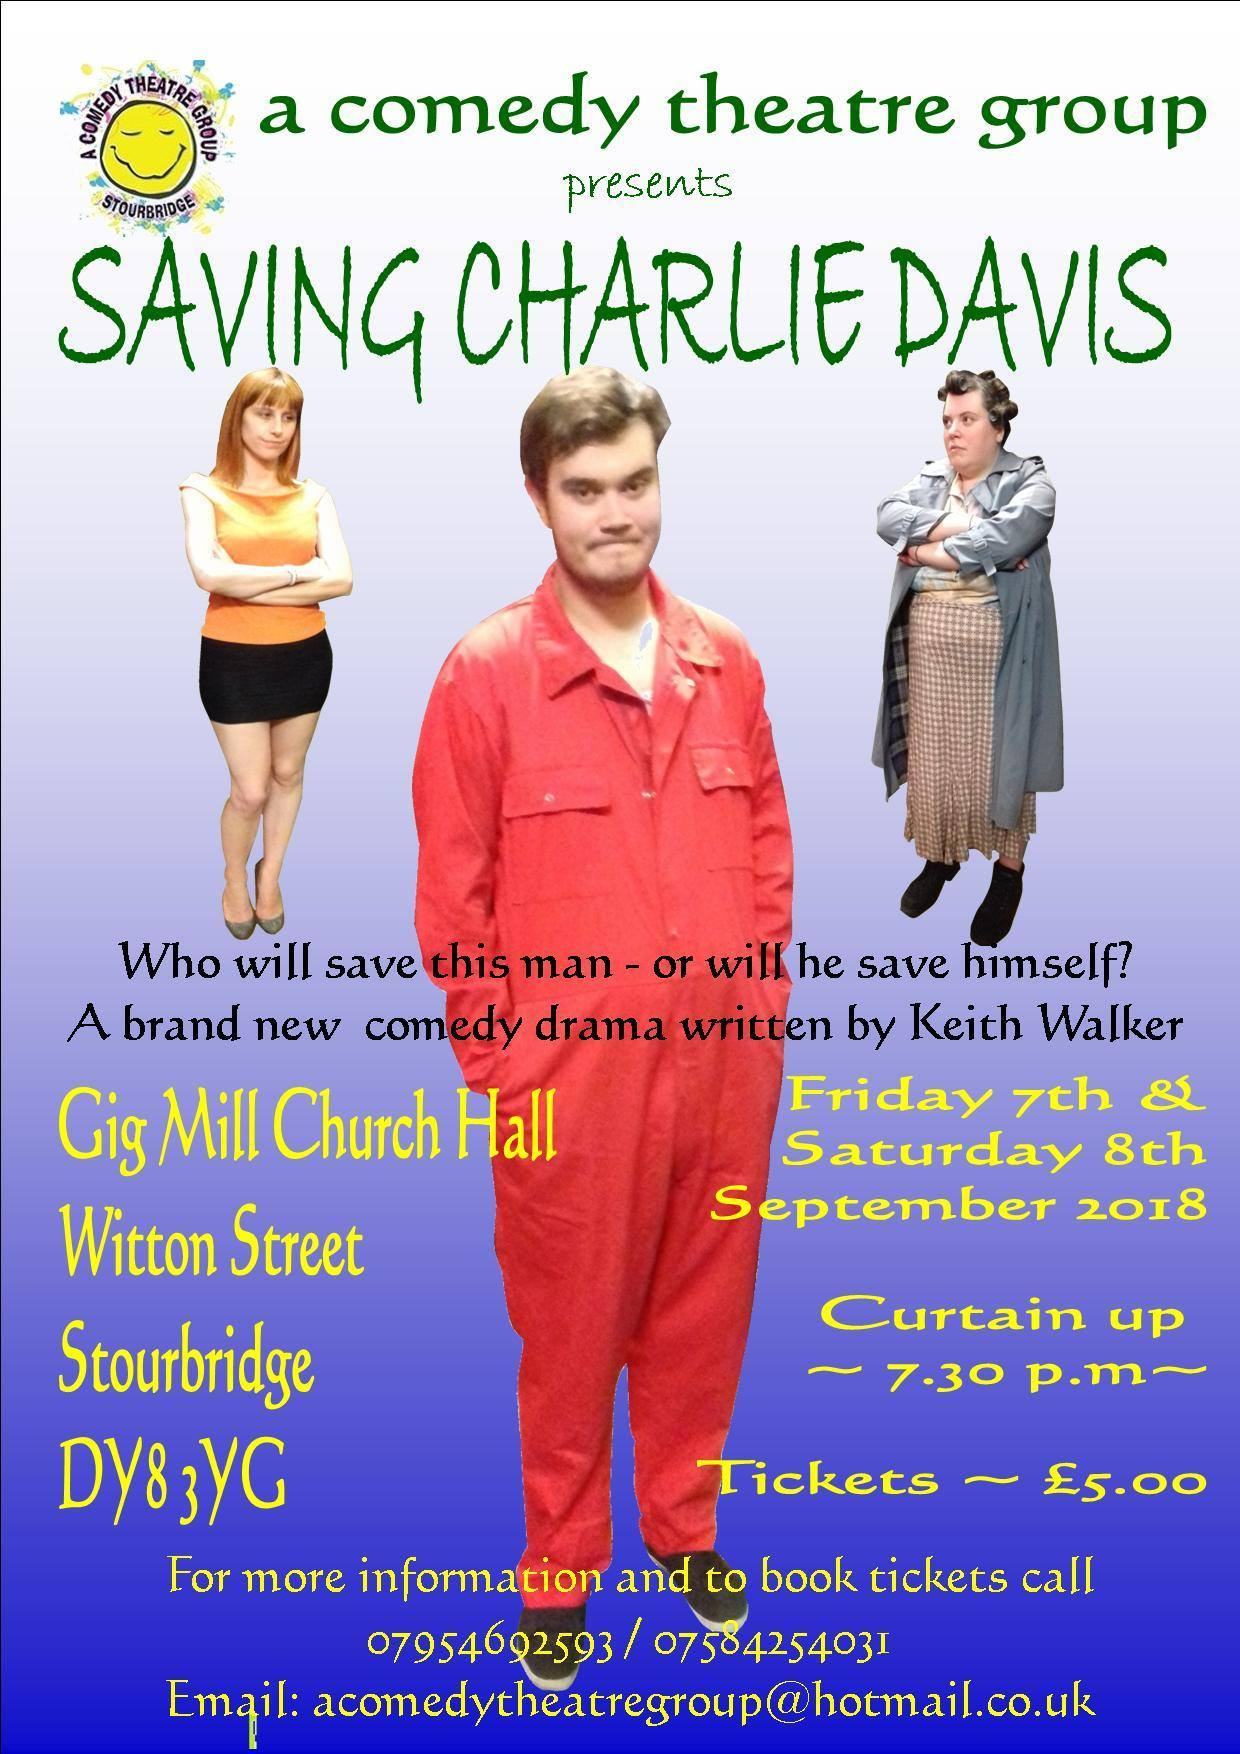 A Comedy Theatre Group will perform their latest original play 'Saving Charlie Davis' on Friday, September 7, and Saturday, September 8.